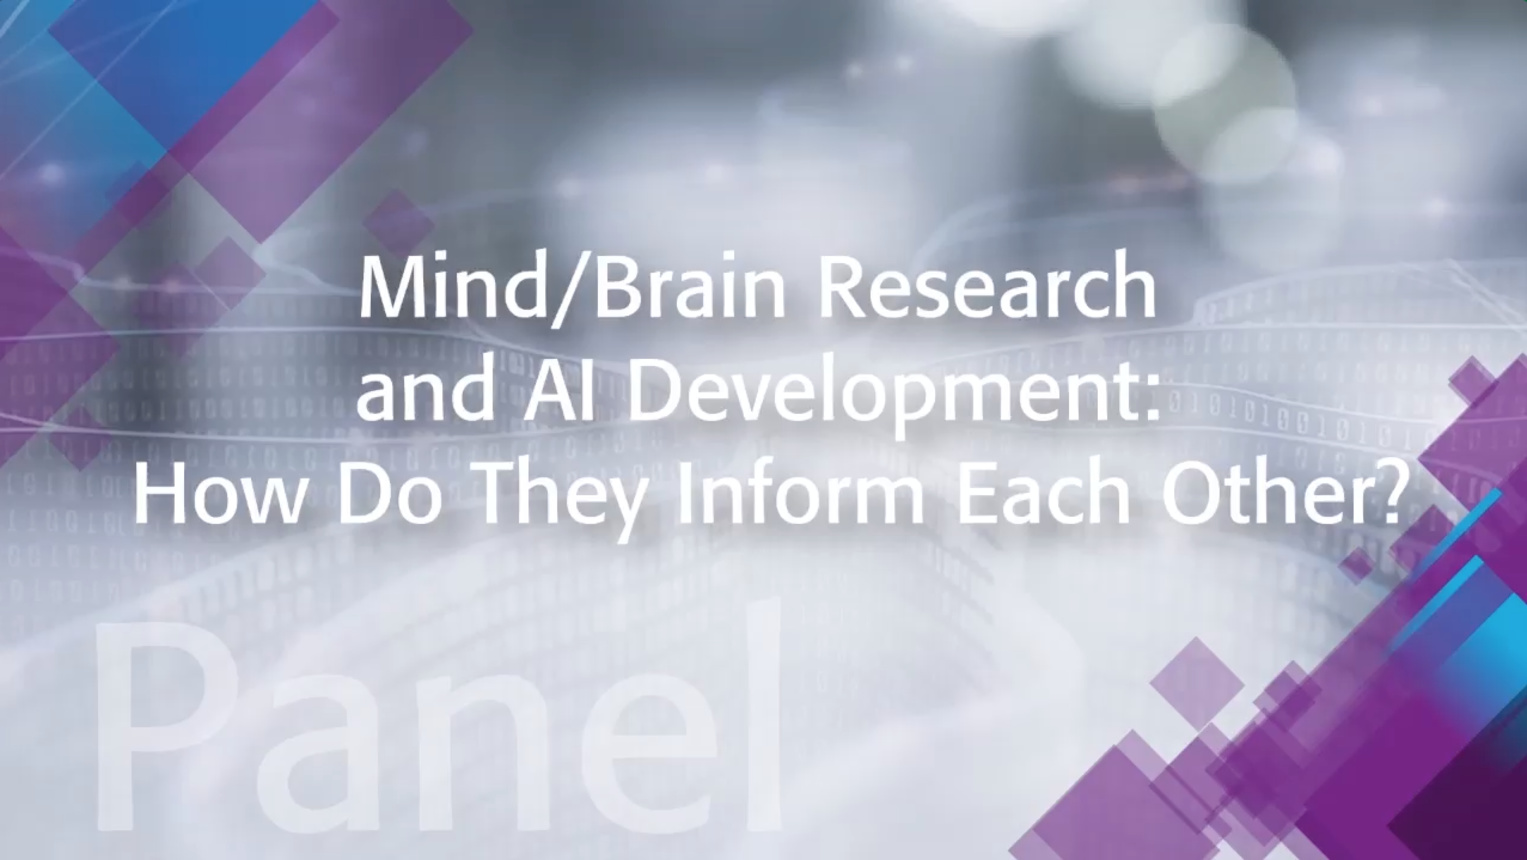 Mind/Brain Research and AI Development: How Do They Inform Each Other?